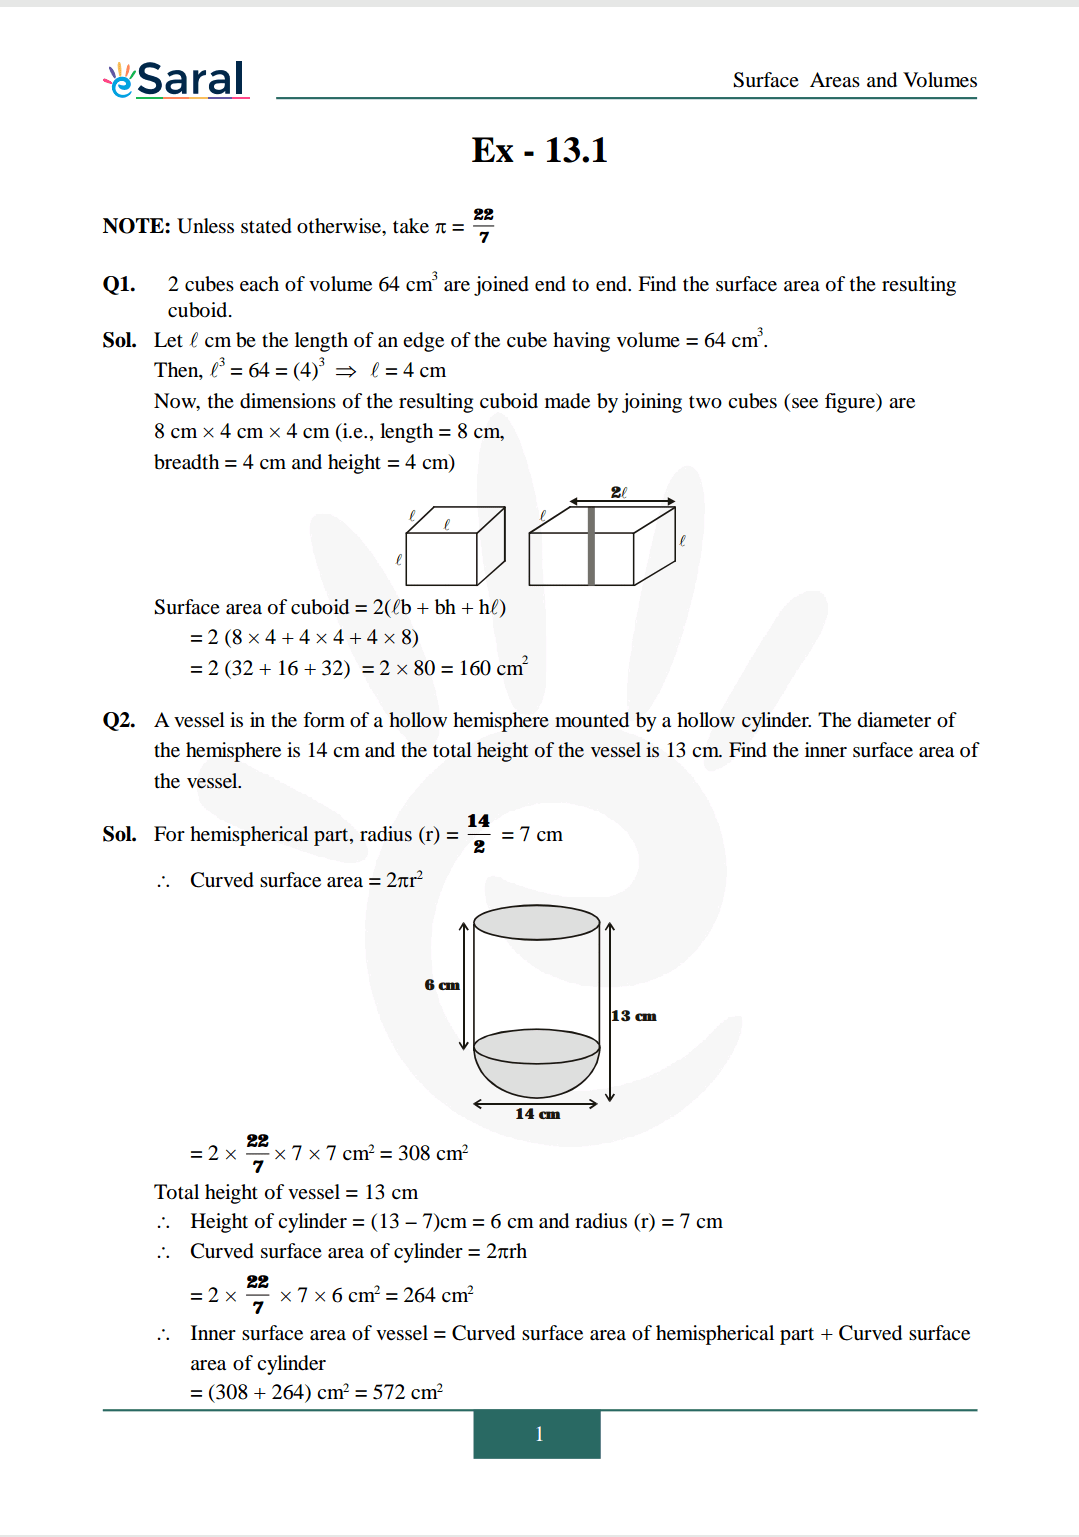 NCERT Solutions for Class 10 Maths chapter 13 Image 2